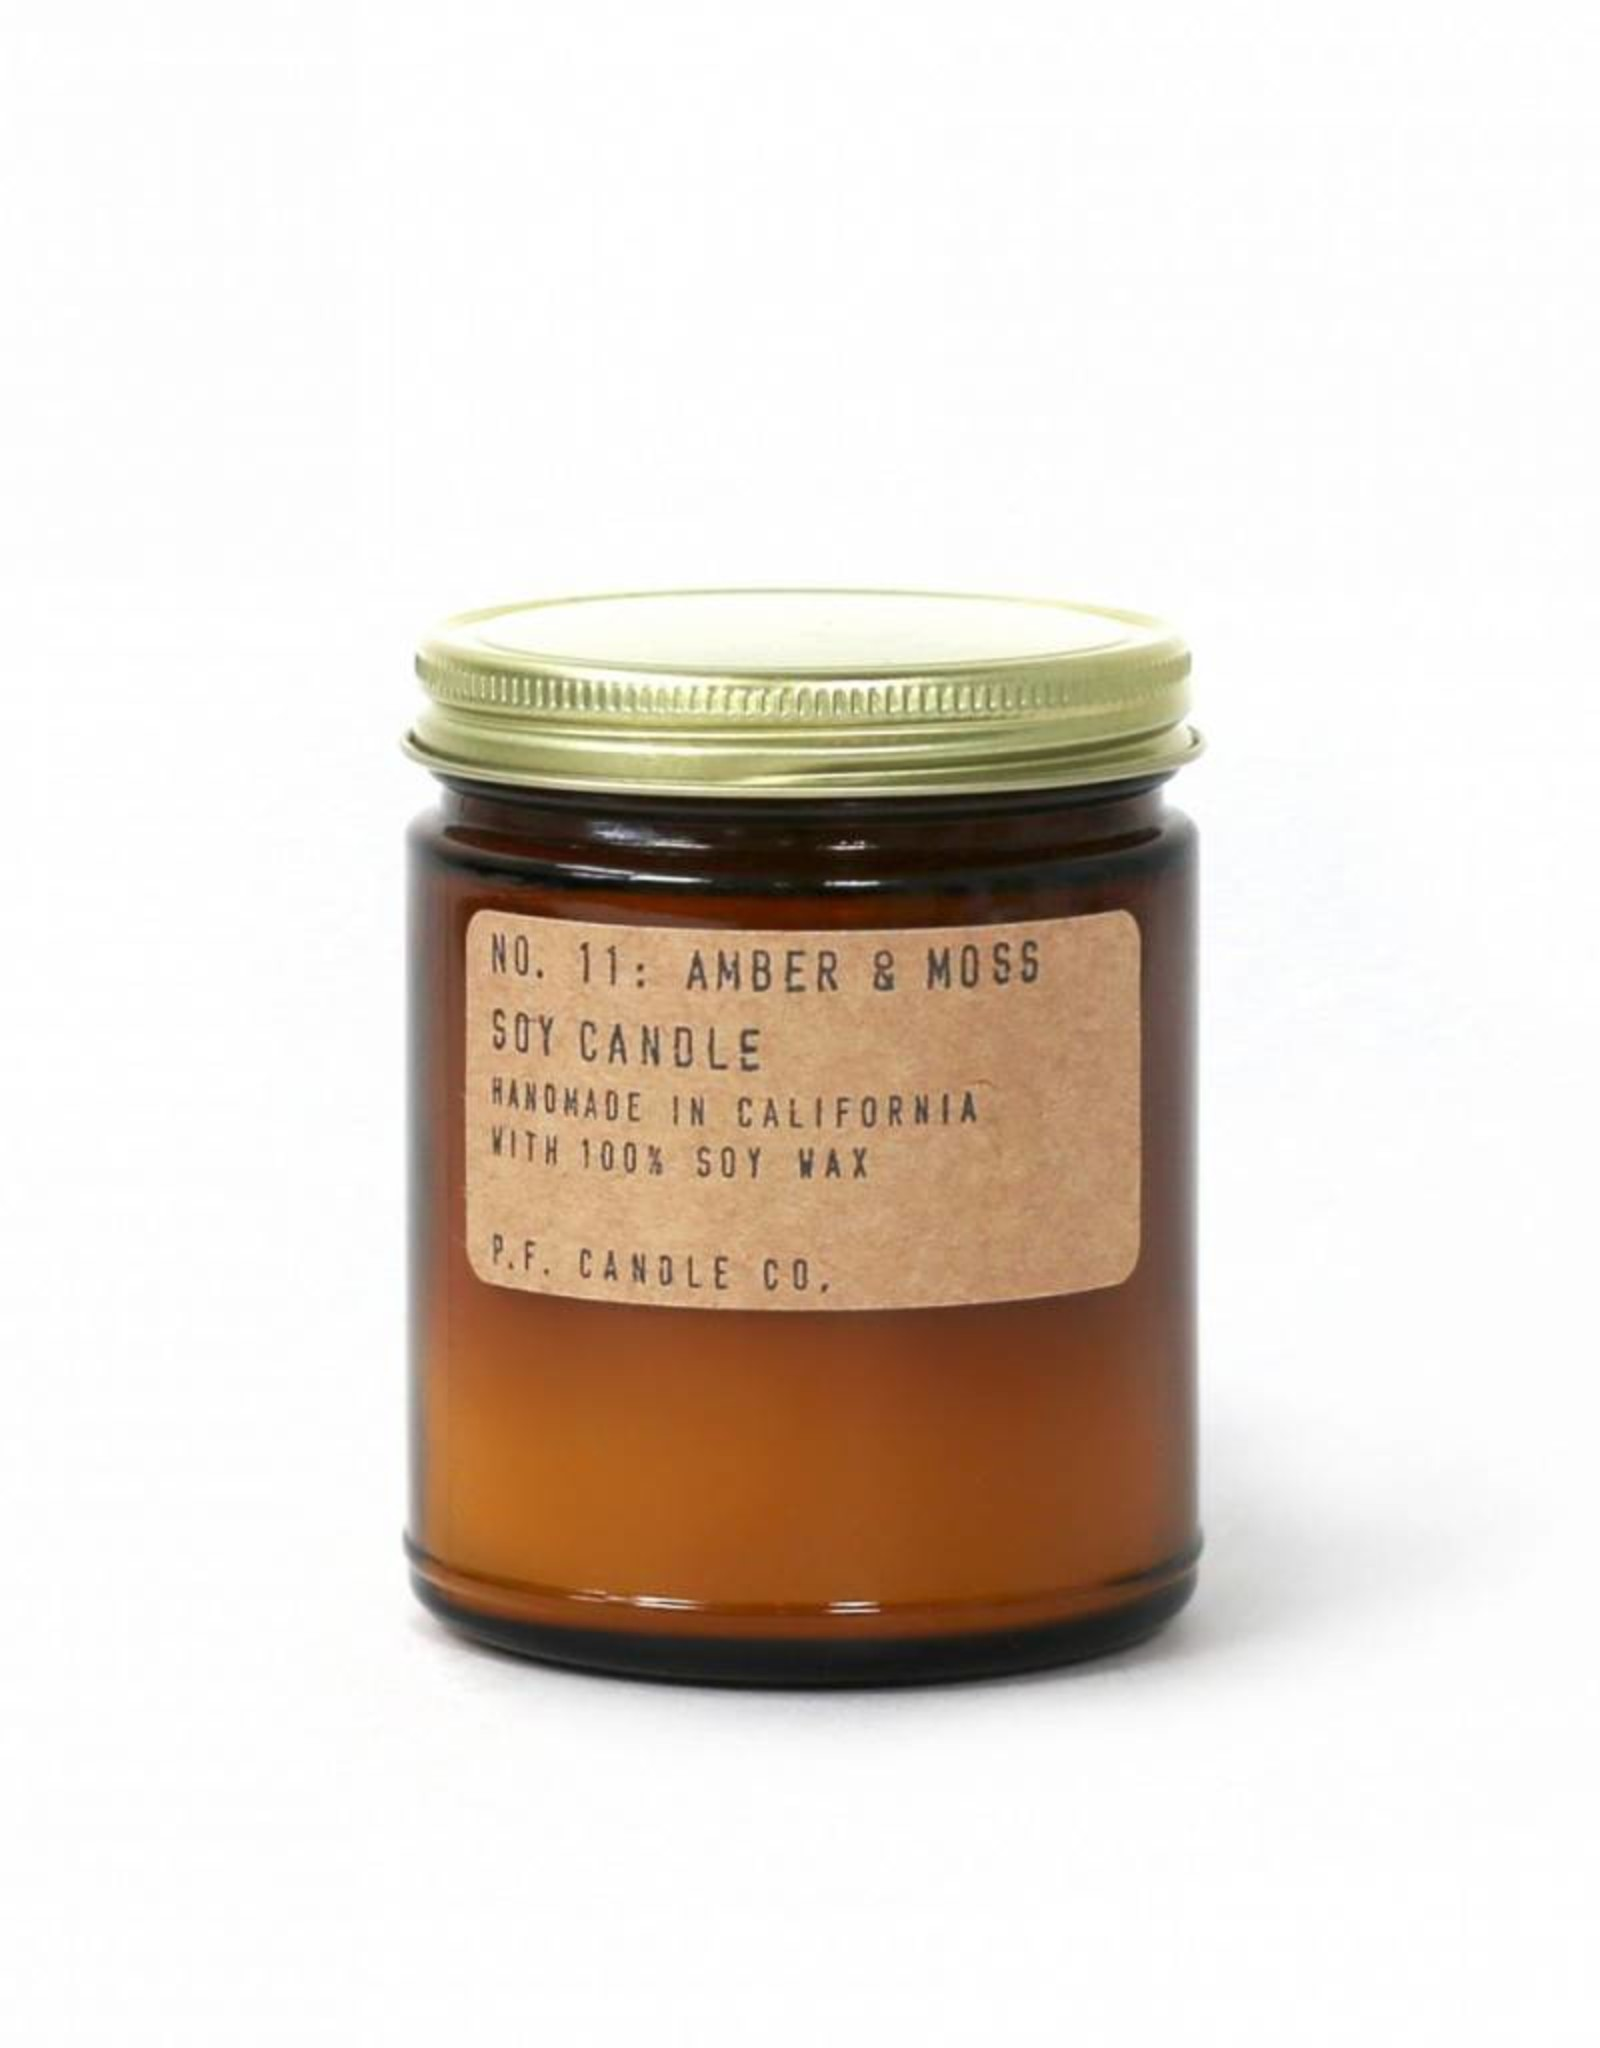 P.F. candle co PF - Amber & Moss  small